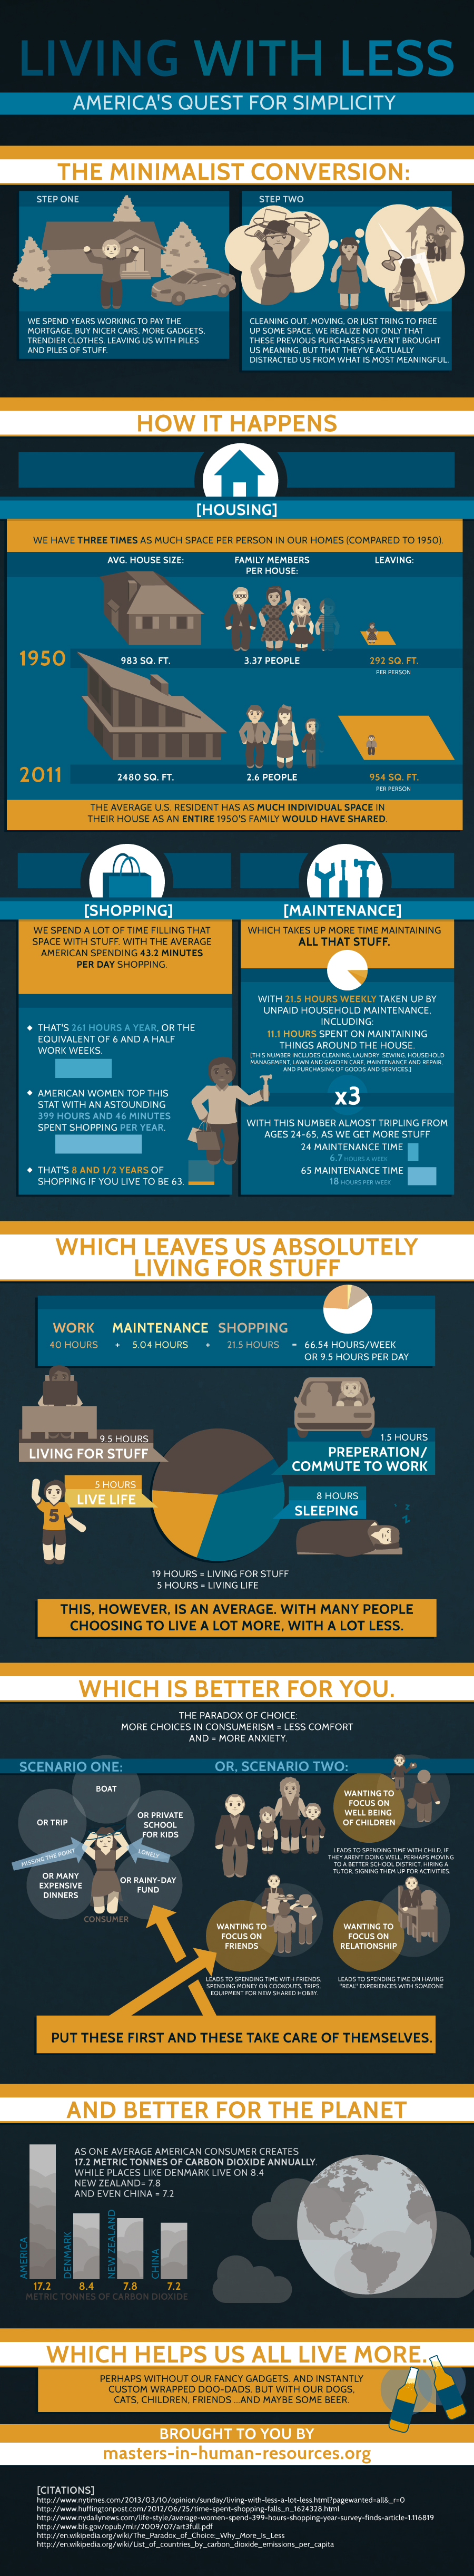 Living With Less: America's Quest for Simplicity